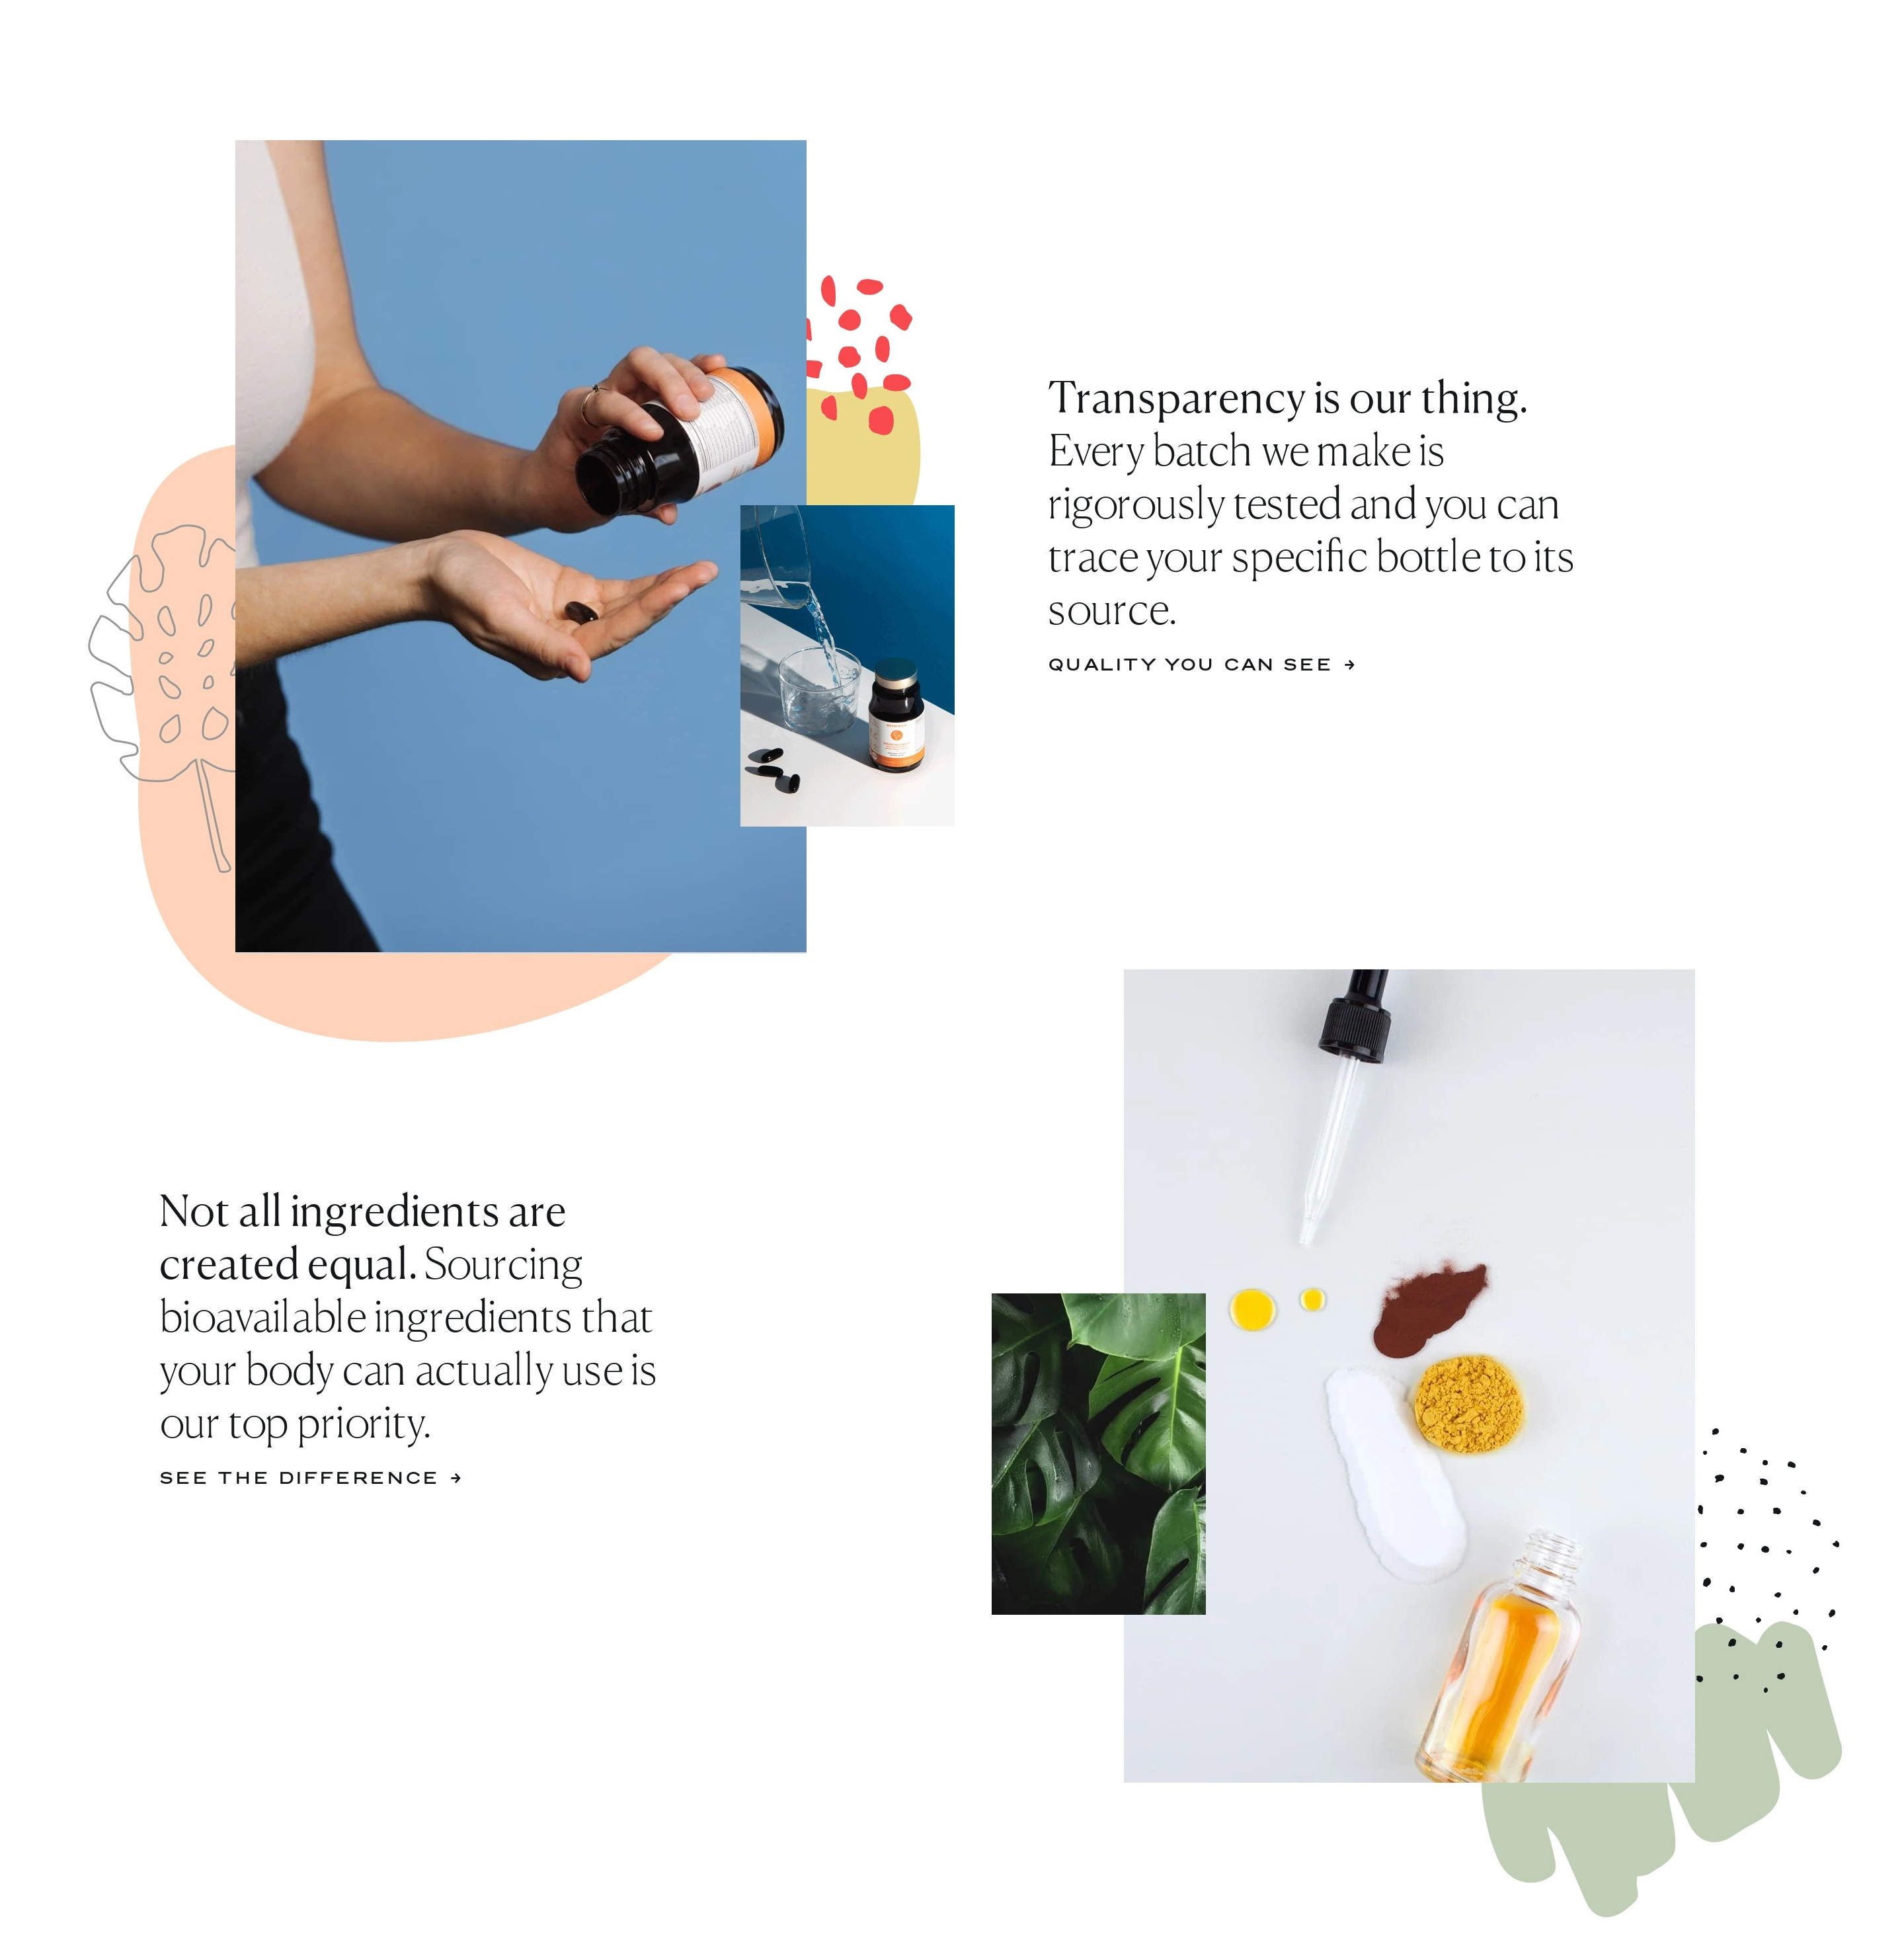 Benefits List with Photo Collages to Support Idea